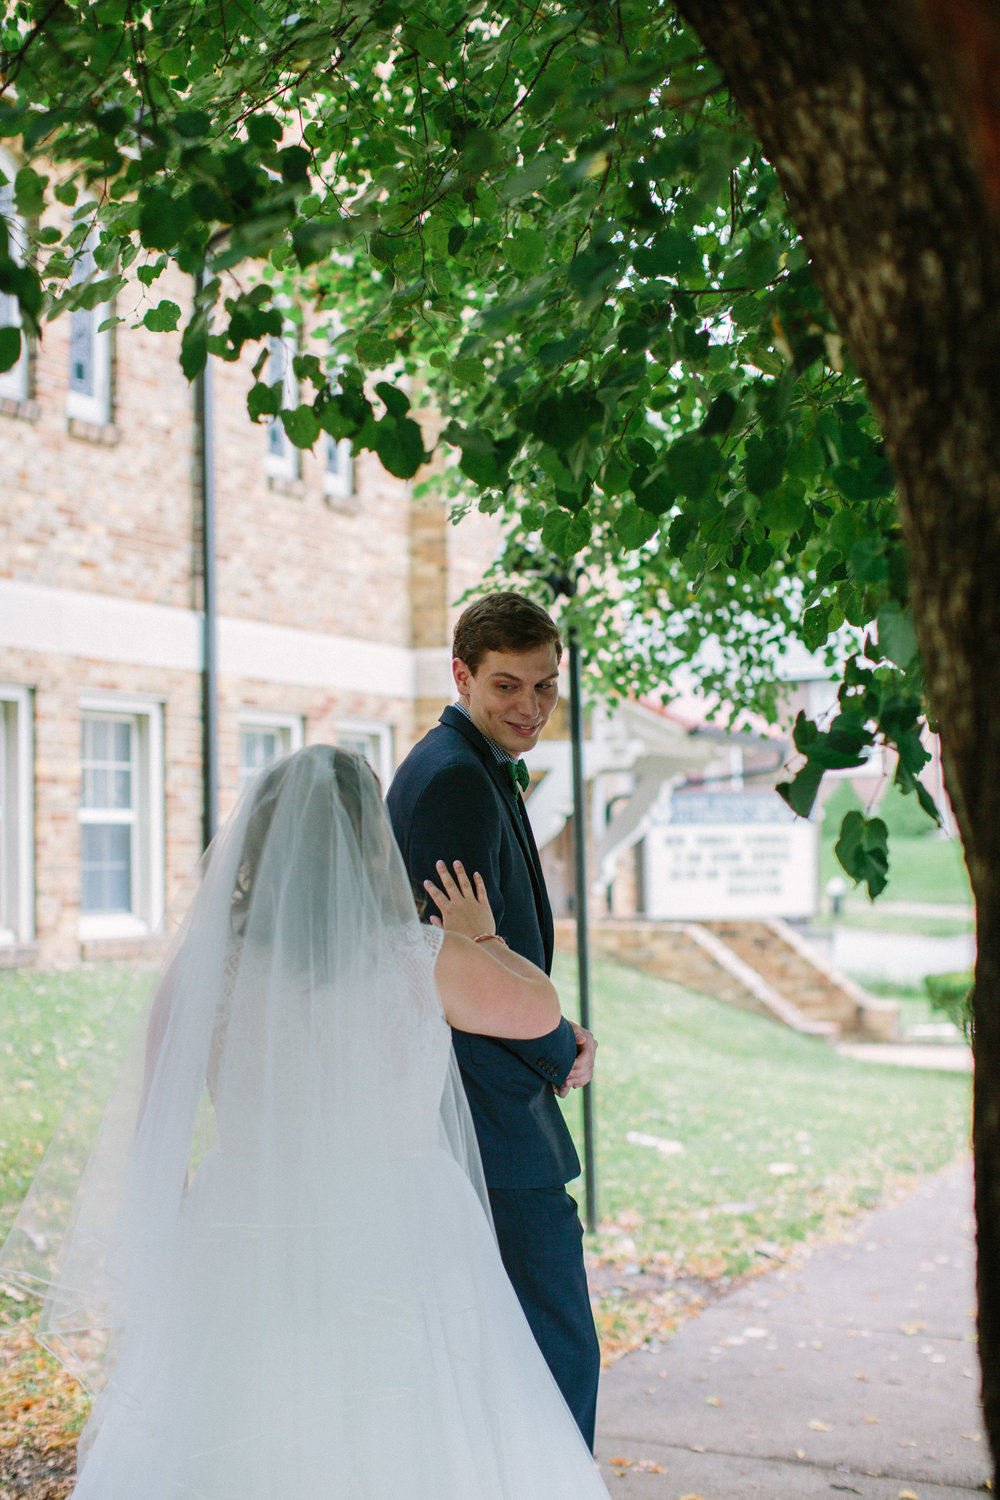 Adorable and lively St. Louis wedding at Ninth Street Abbey. Ashley Pieper Photography, St. Louis  documentary Wedding photographer for the genuine couple in love.